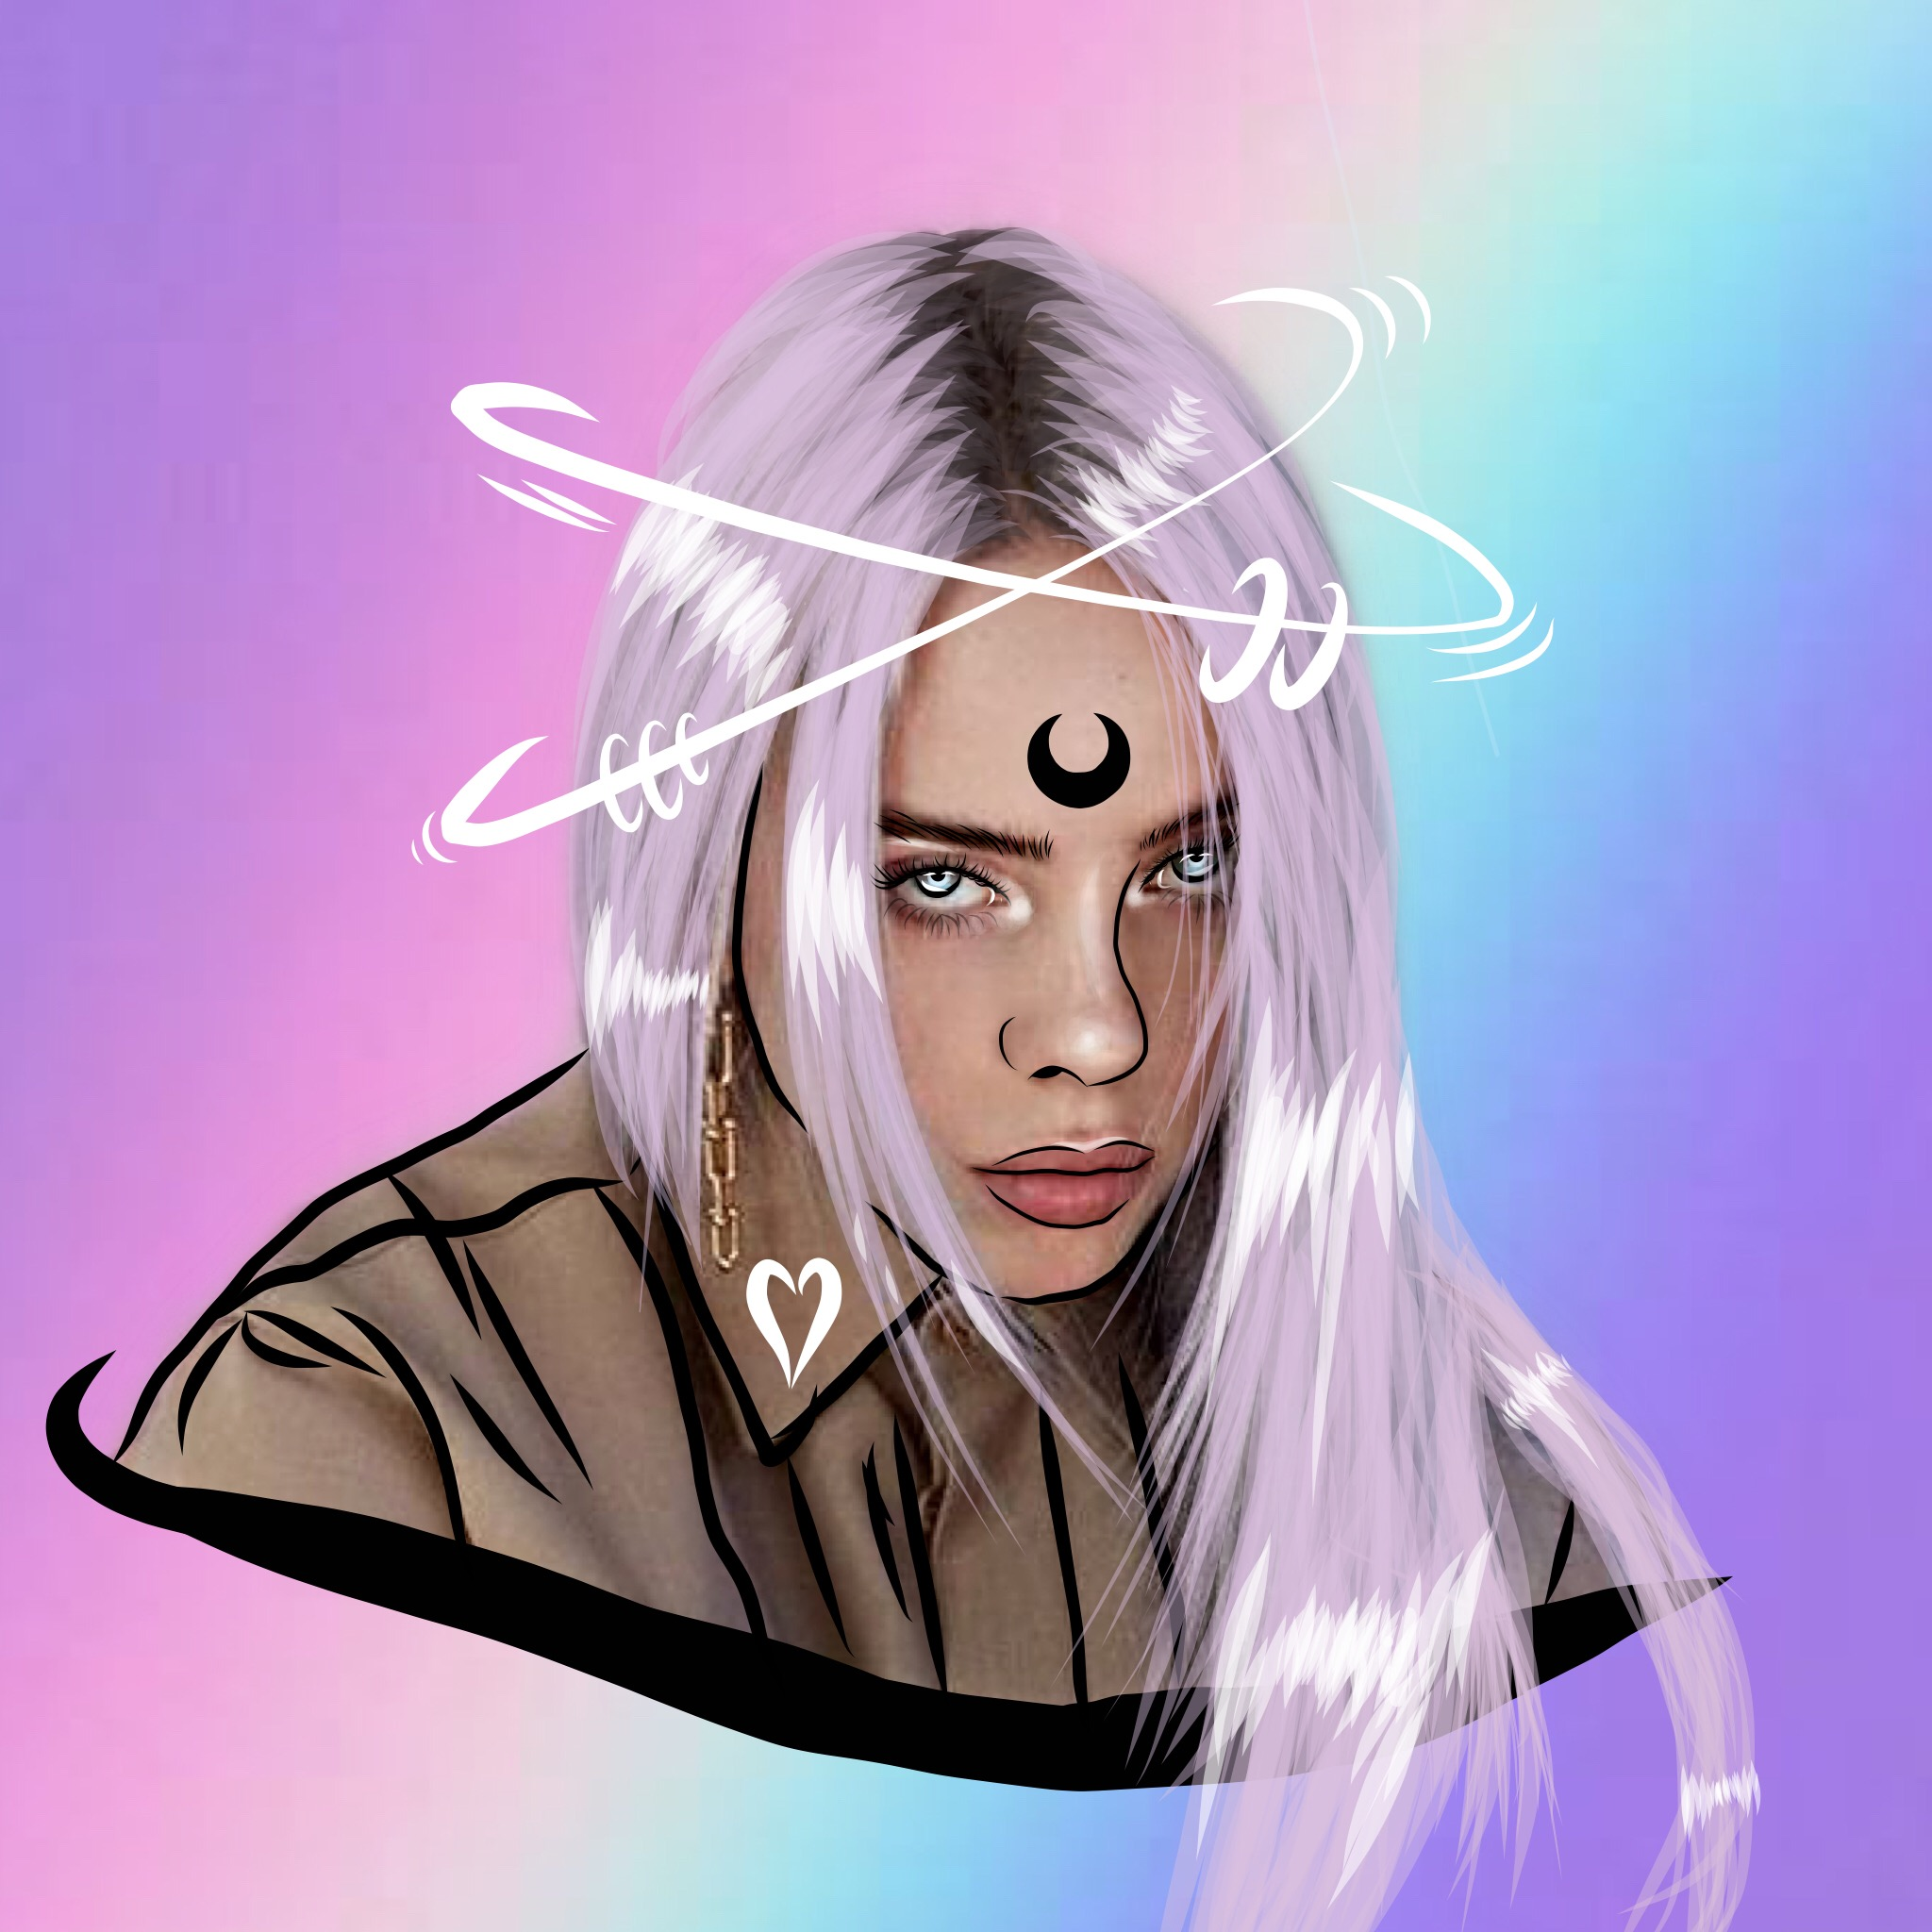 Billy Eilish #billieelish #billieeilishedit #art #draw #drawing #outline #outlines #outlineaesthetics #outlinesart #outlined #outline-draws #drawsoutlined